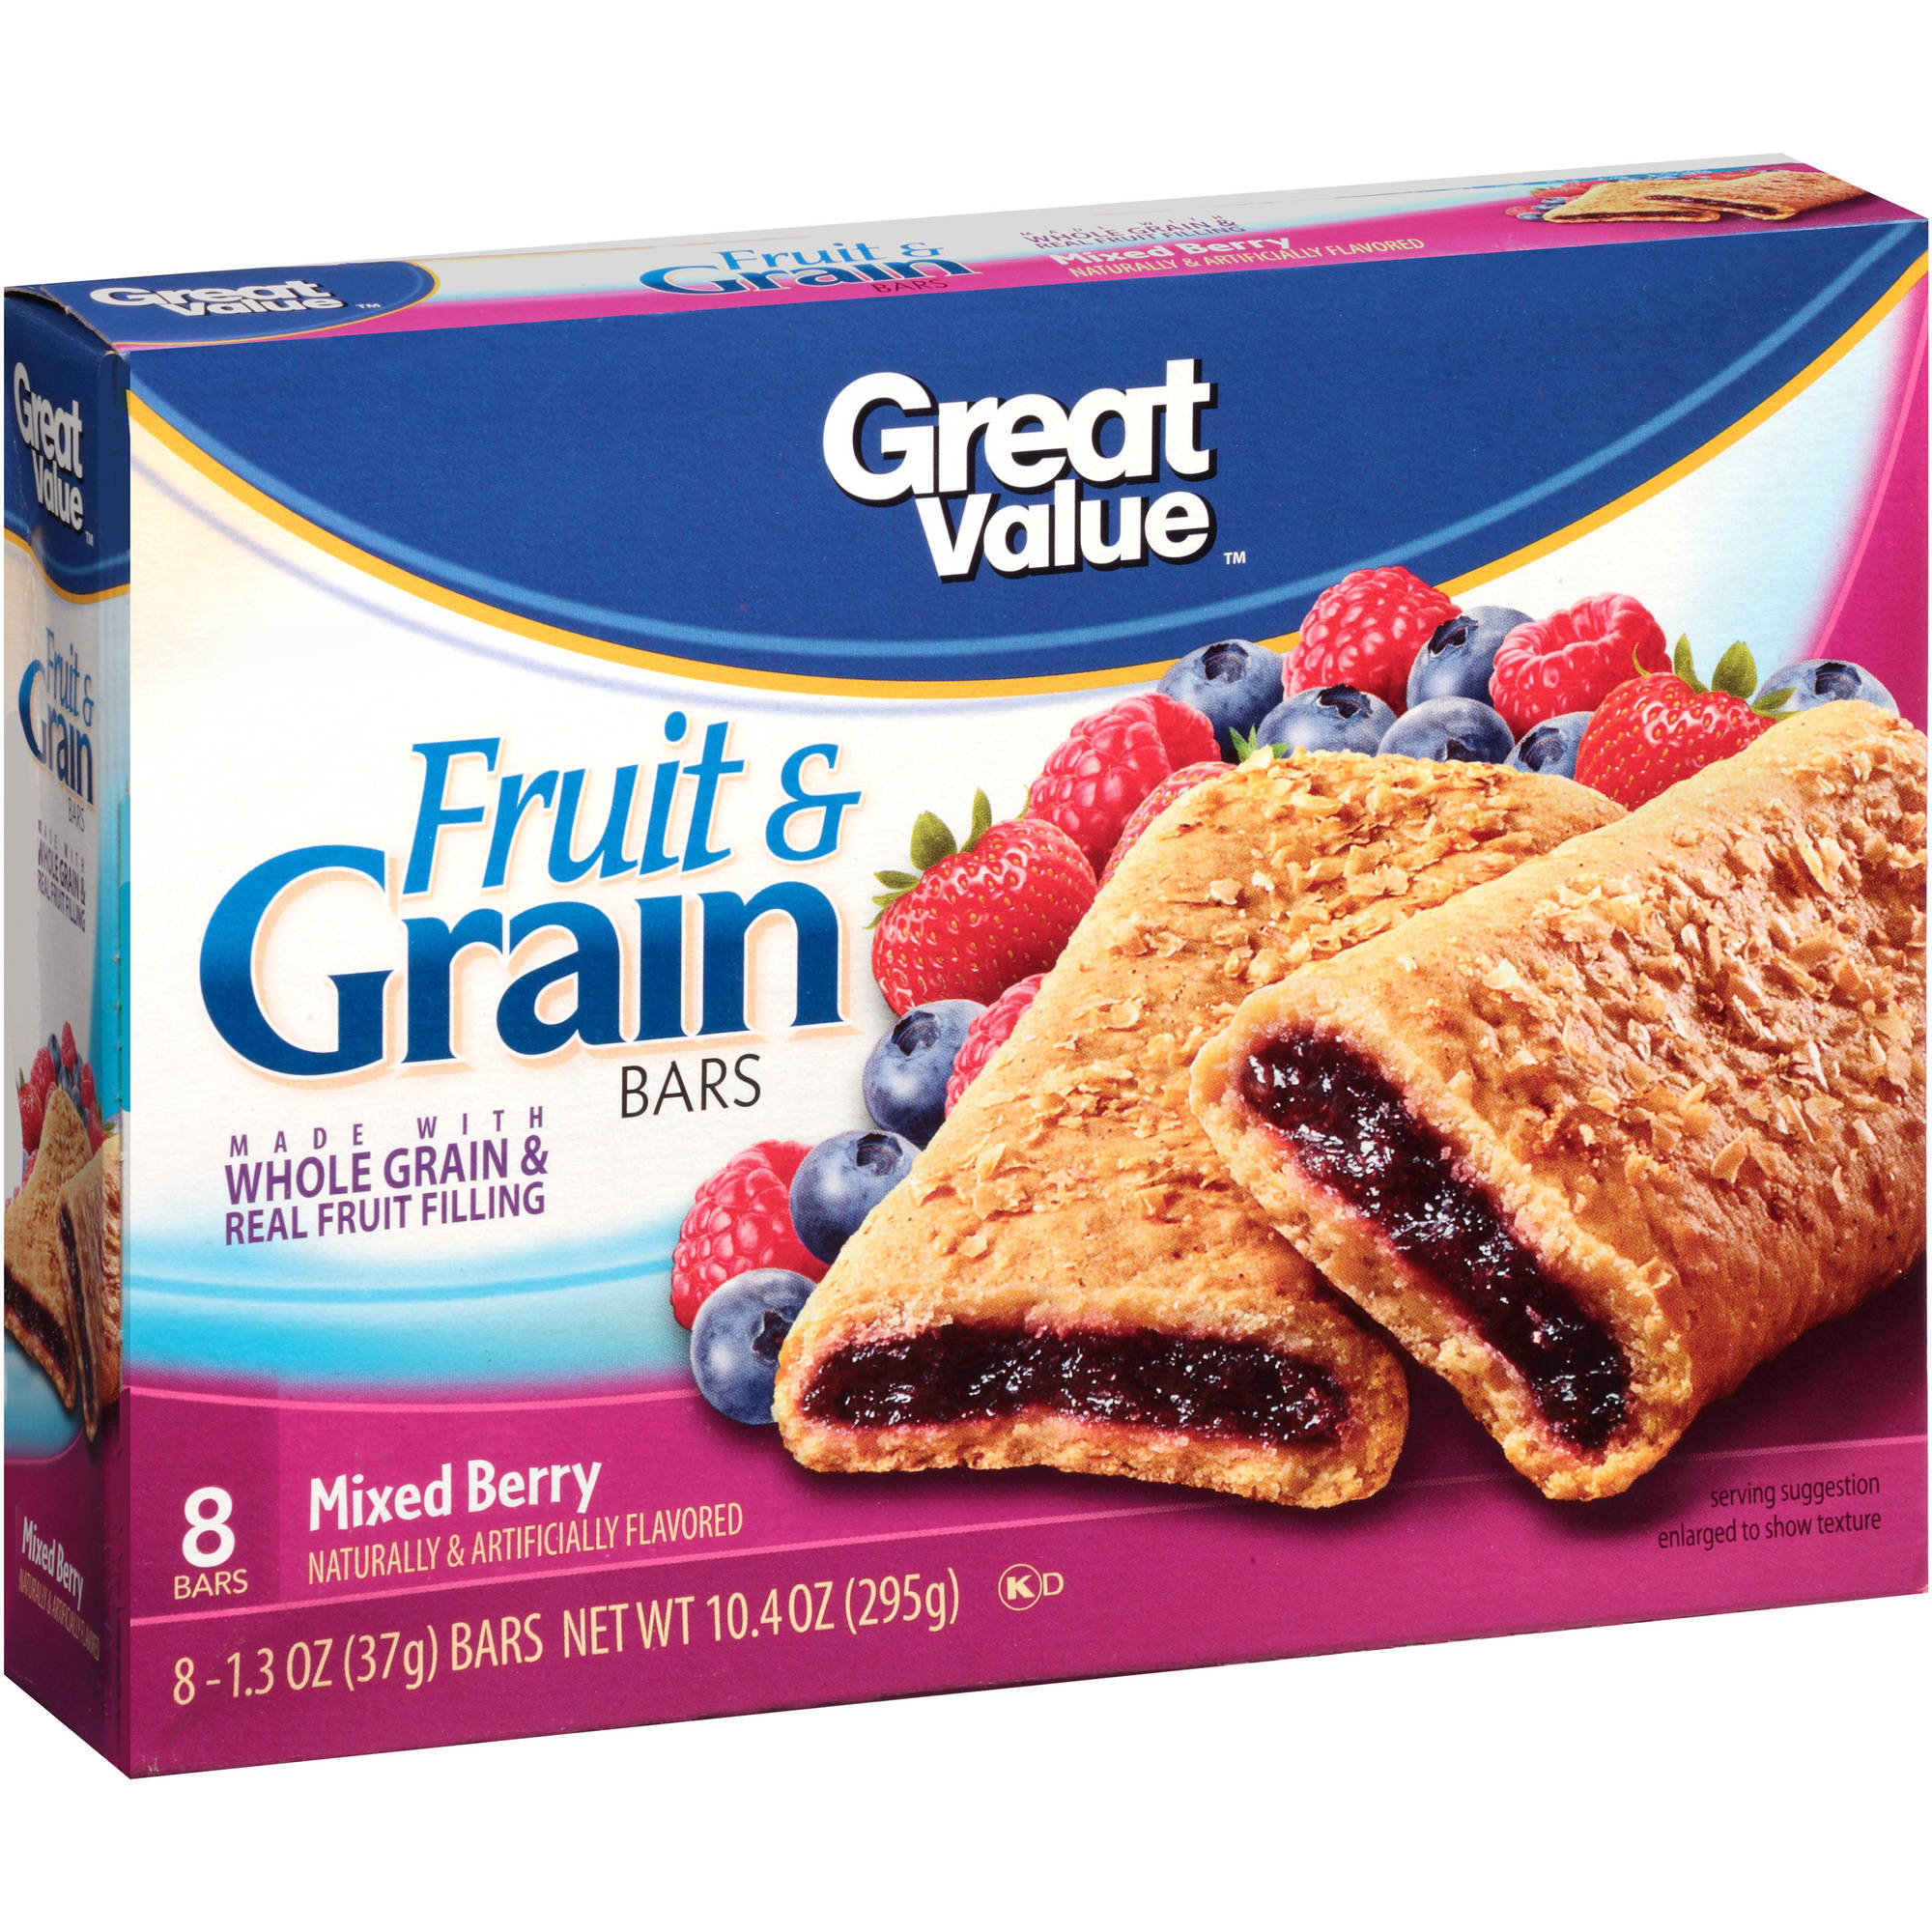 Great Value Mixed Berry Fruit & Grain Bars, 10.4 oz